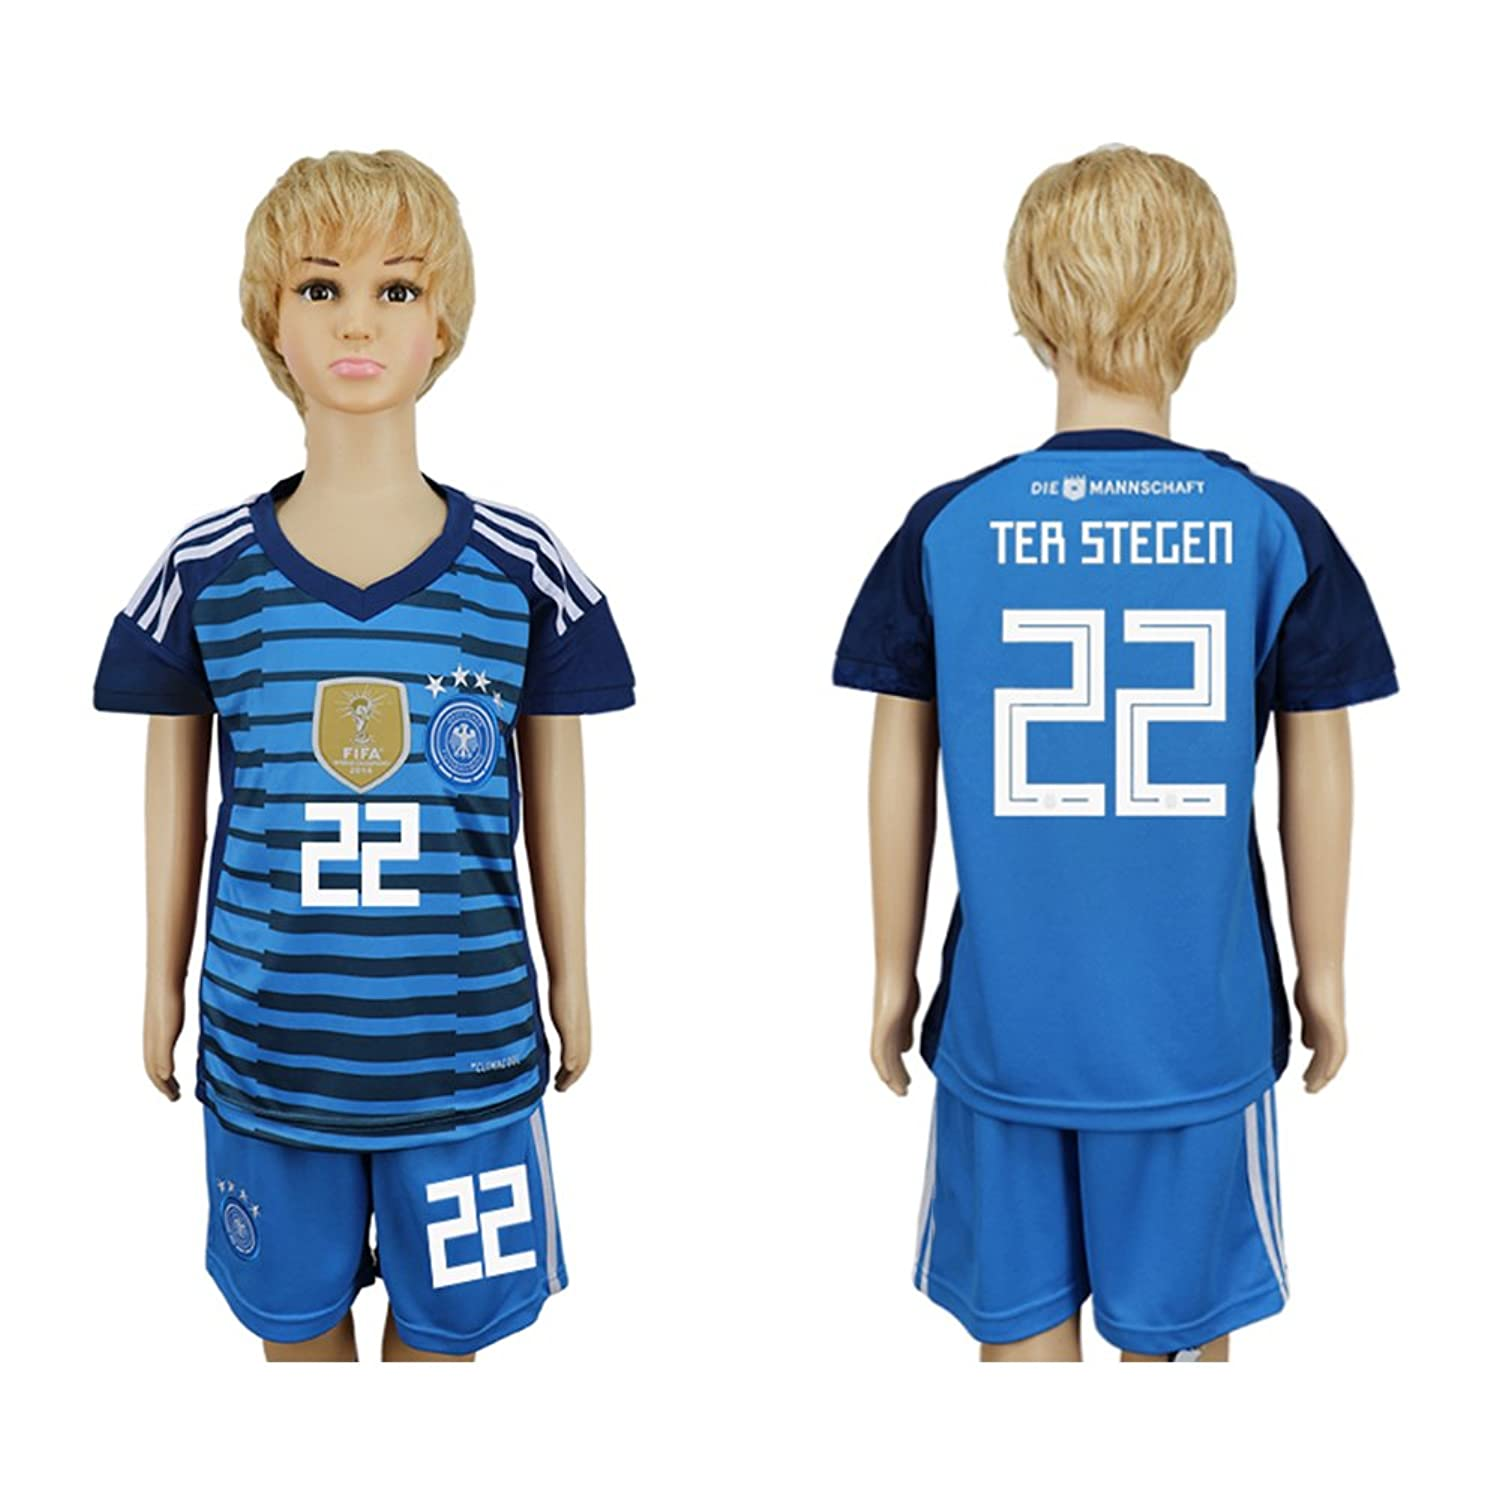 Soc.Meku SHIRT ボーイズ B07B7HPFLDブルー 28# (12 to 14 Years Old)